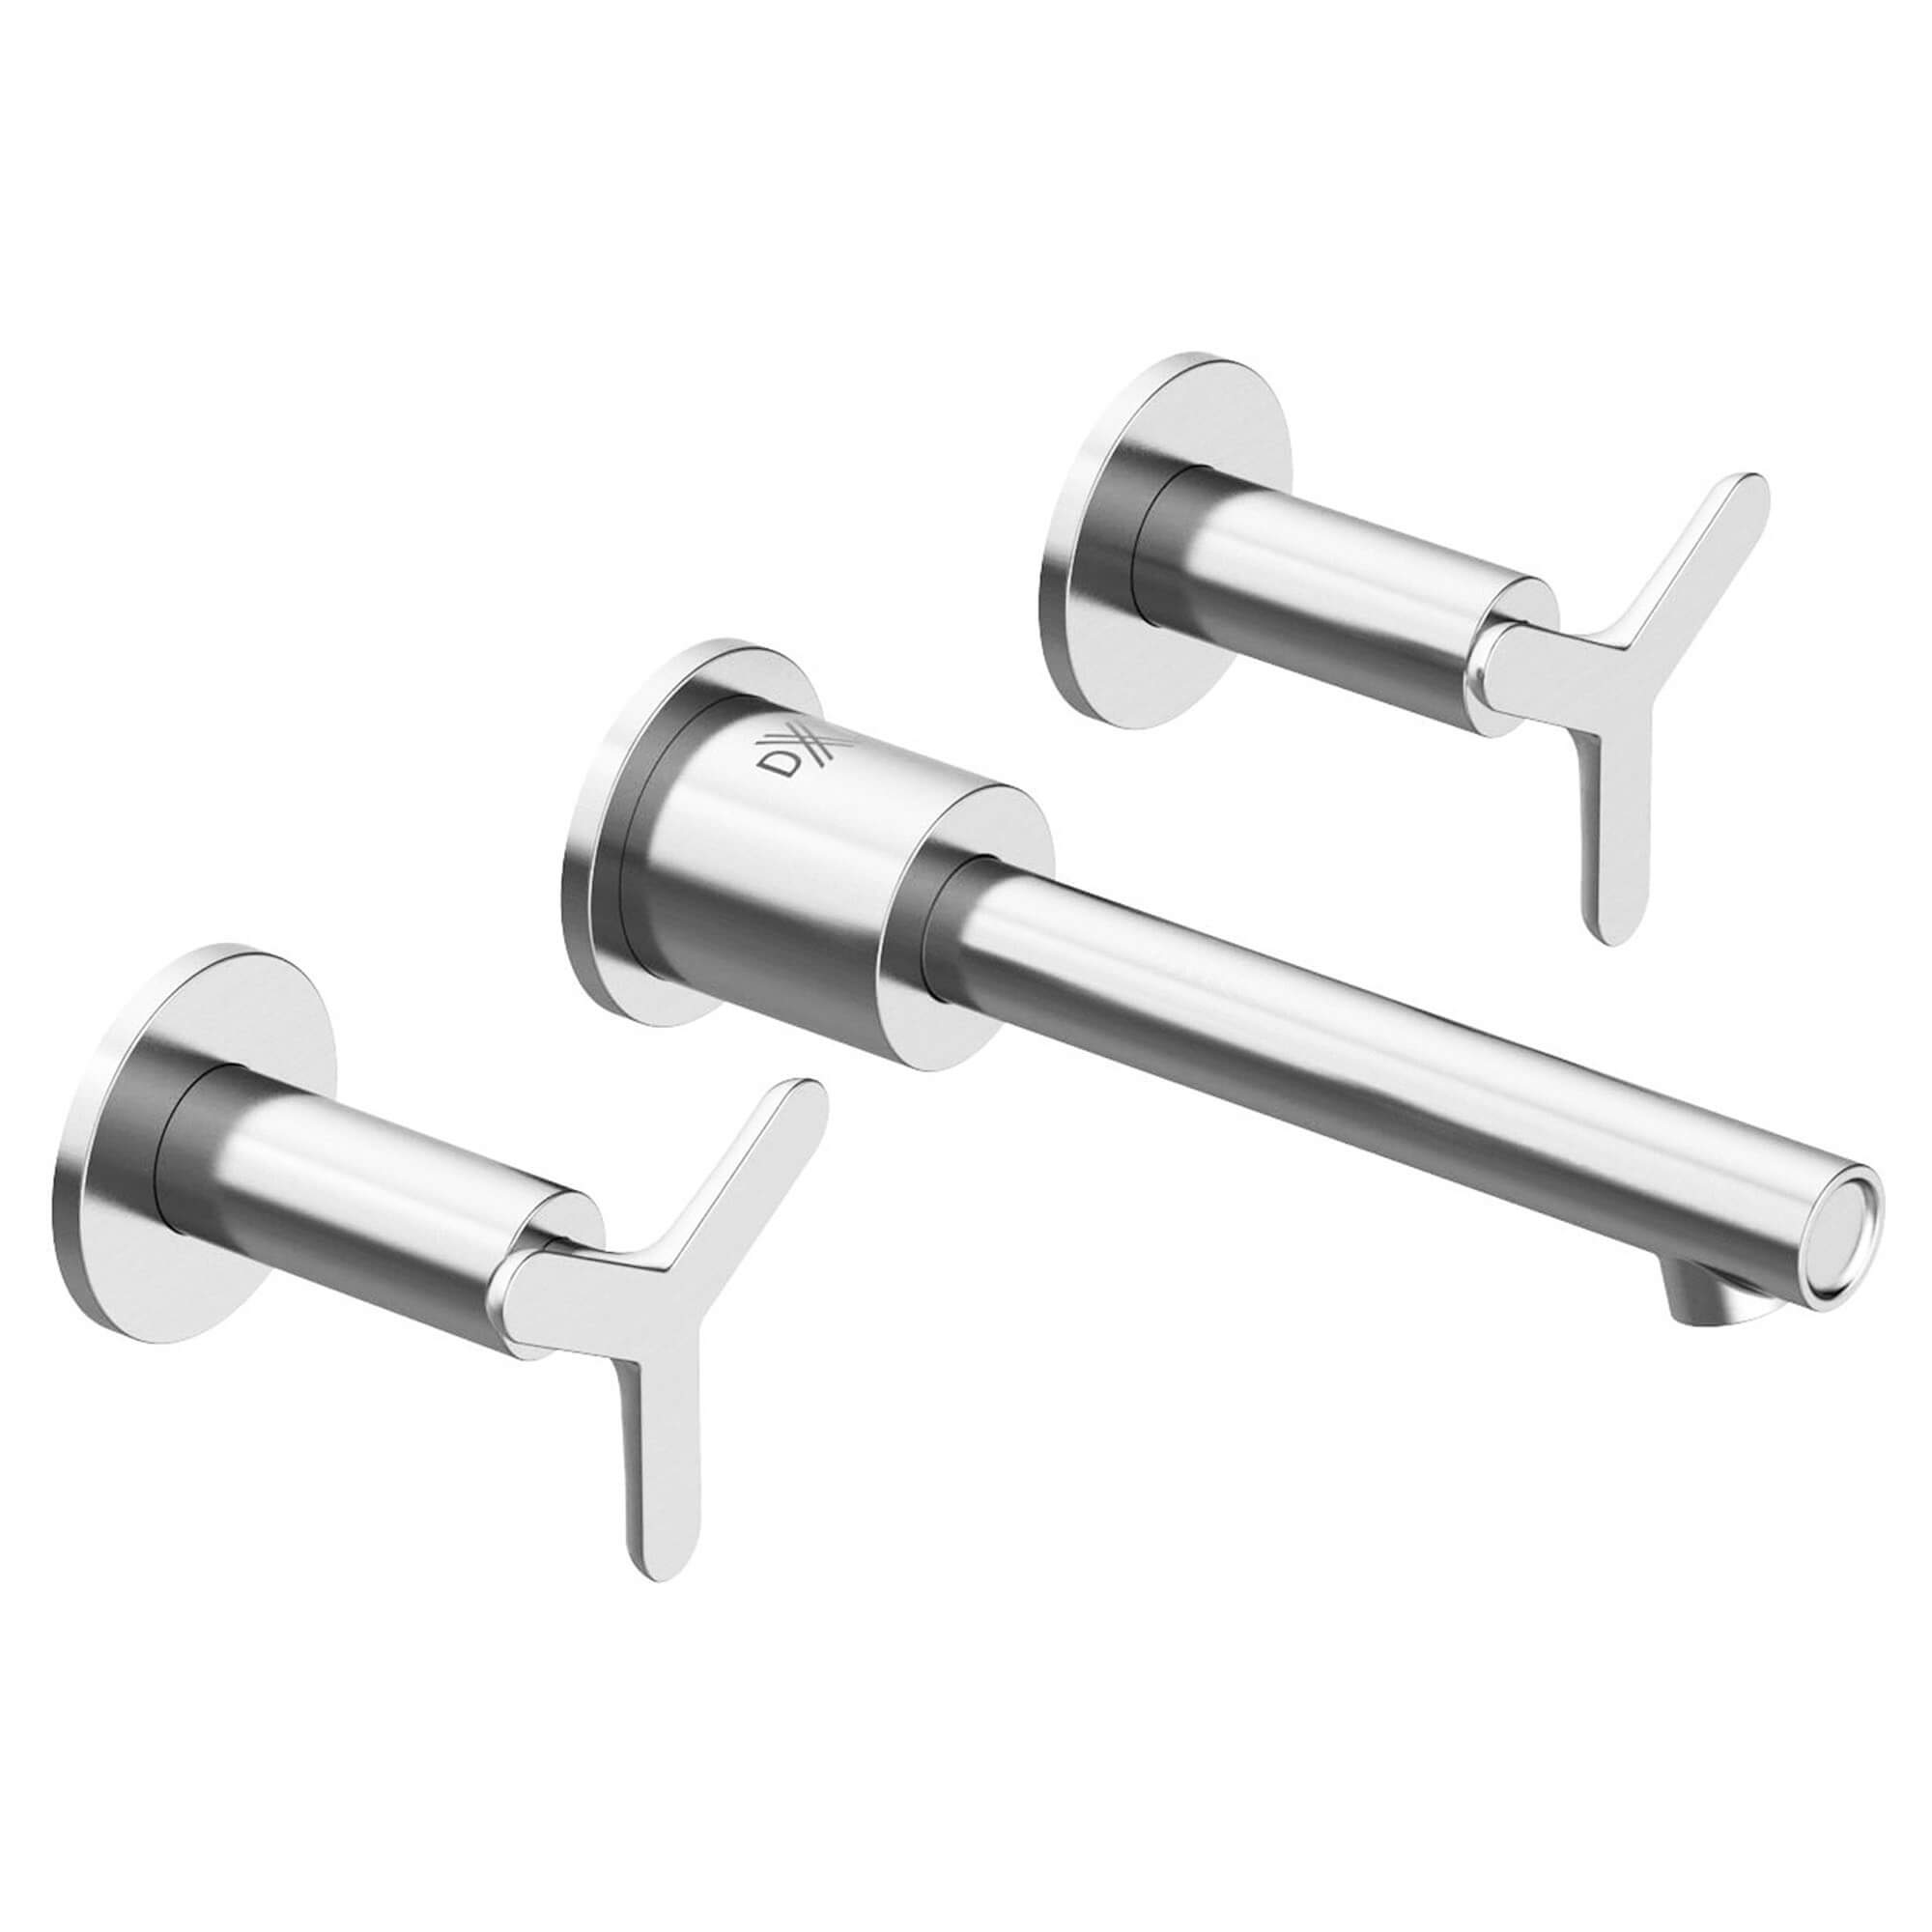 Percy Wall-Mount Faucet with Tri-Spoke Handles